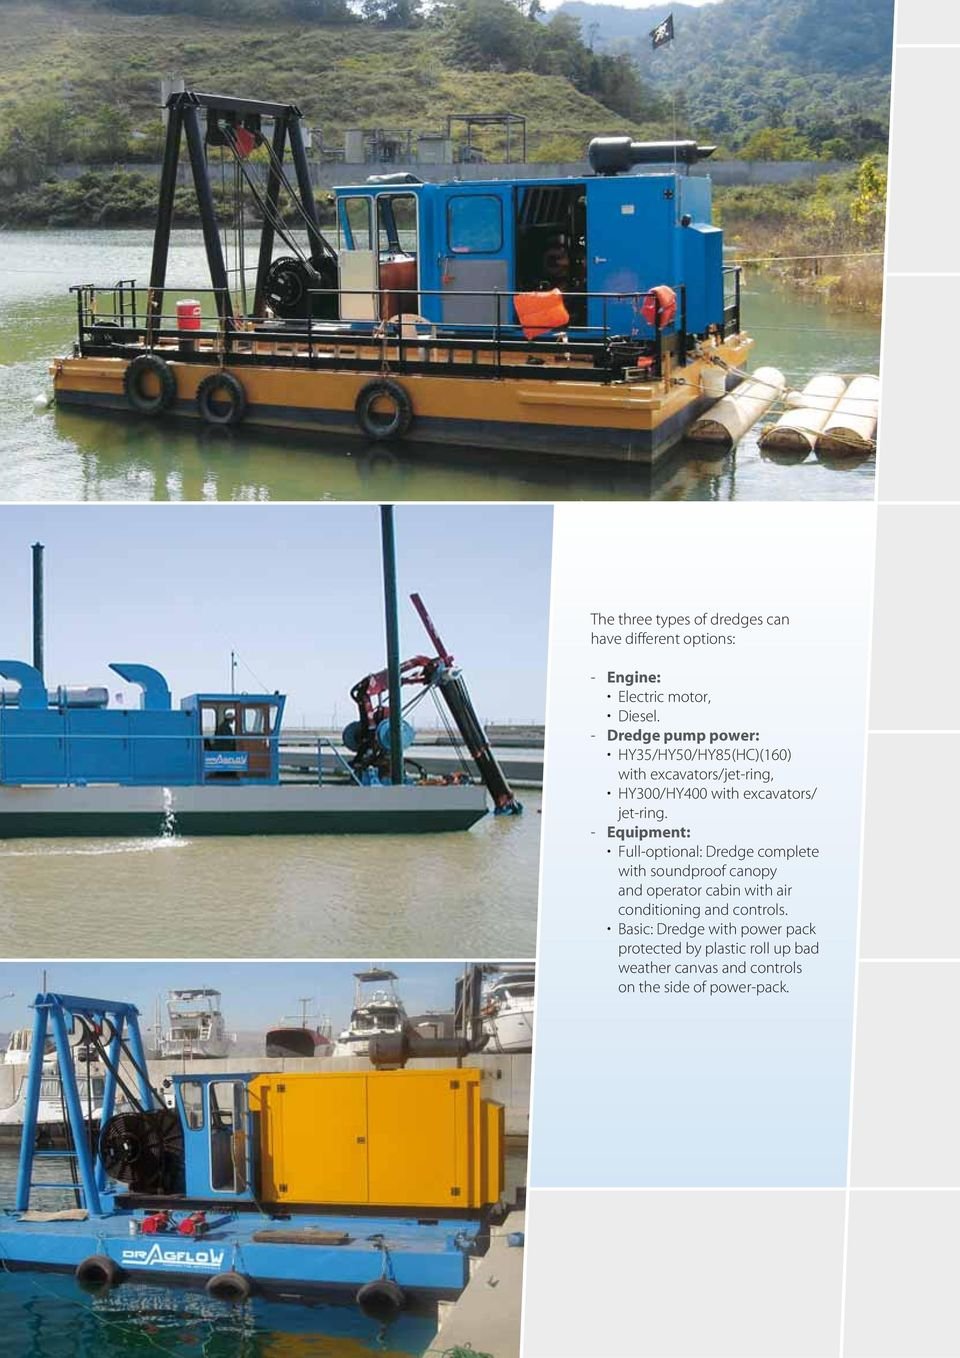 - Equipment: Full-optional: Dredge complete with soundproof canopy and operator cabin with air conditioning